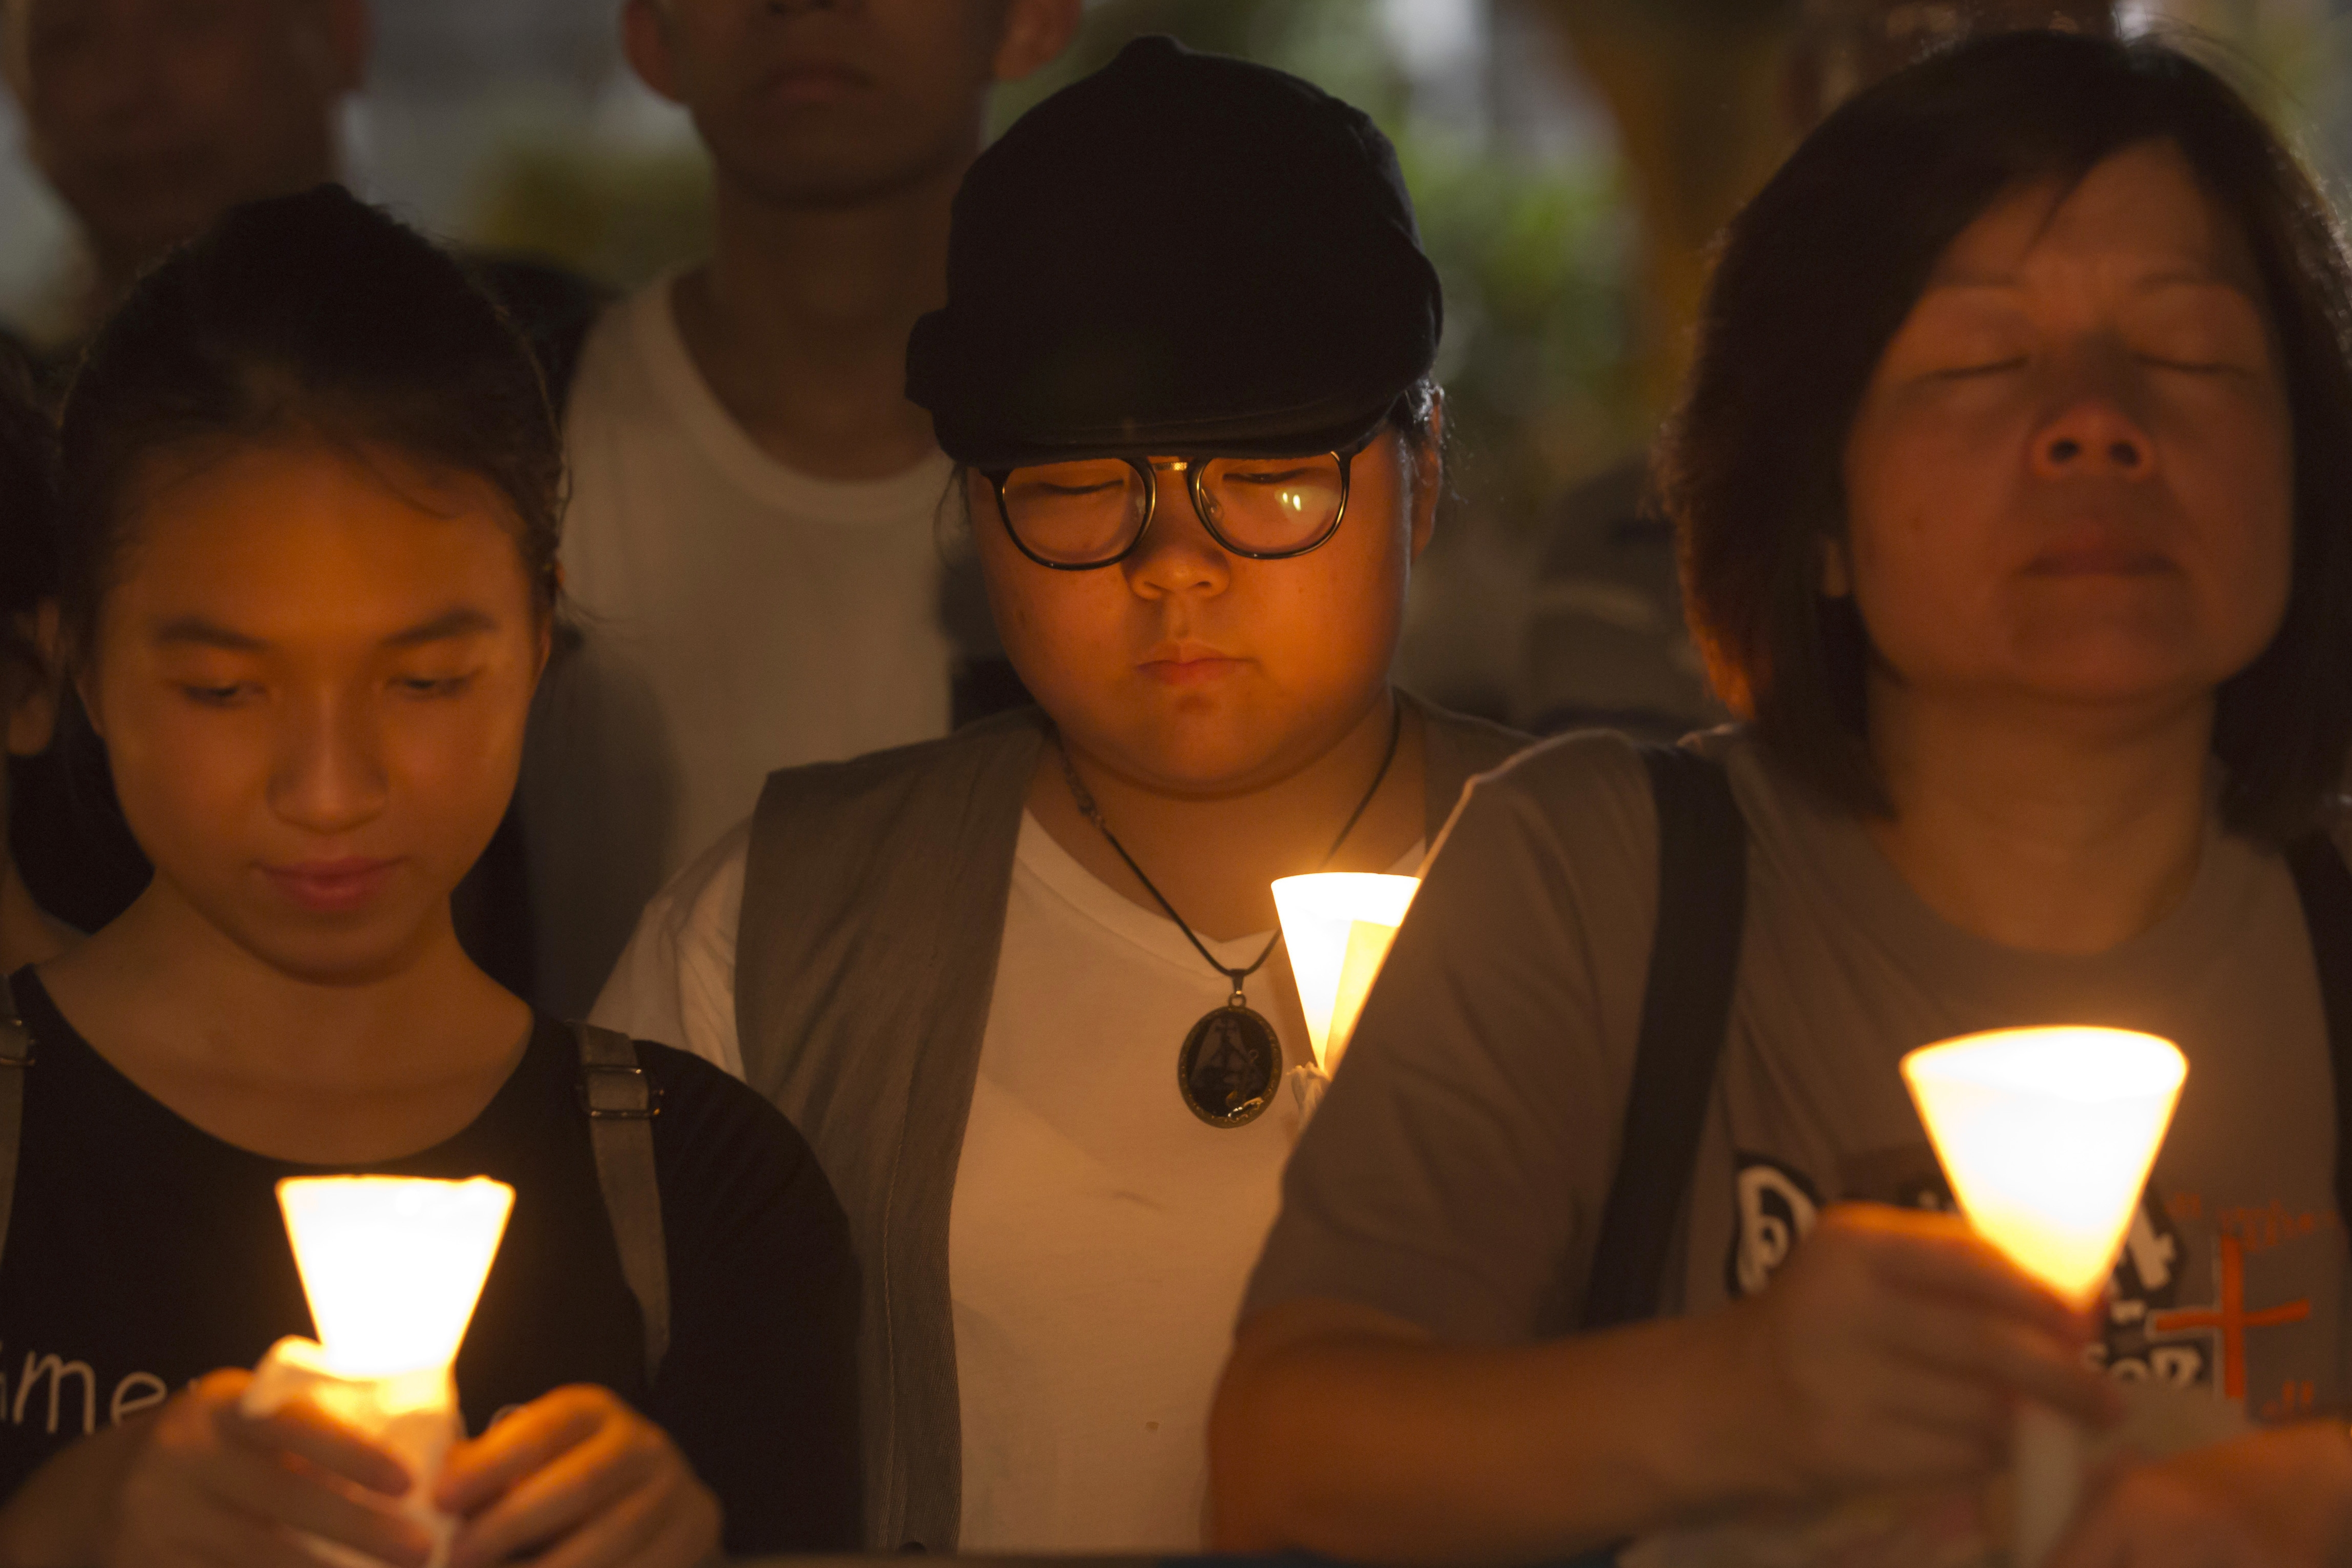 An annual vigil in Hong Kong in 2018 marking the anniversary of the Tiananmen Square massacre